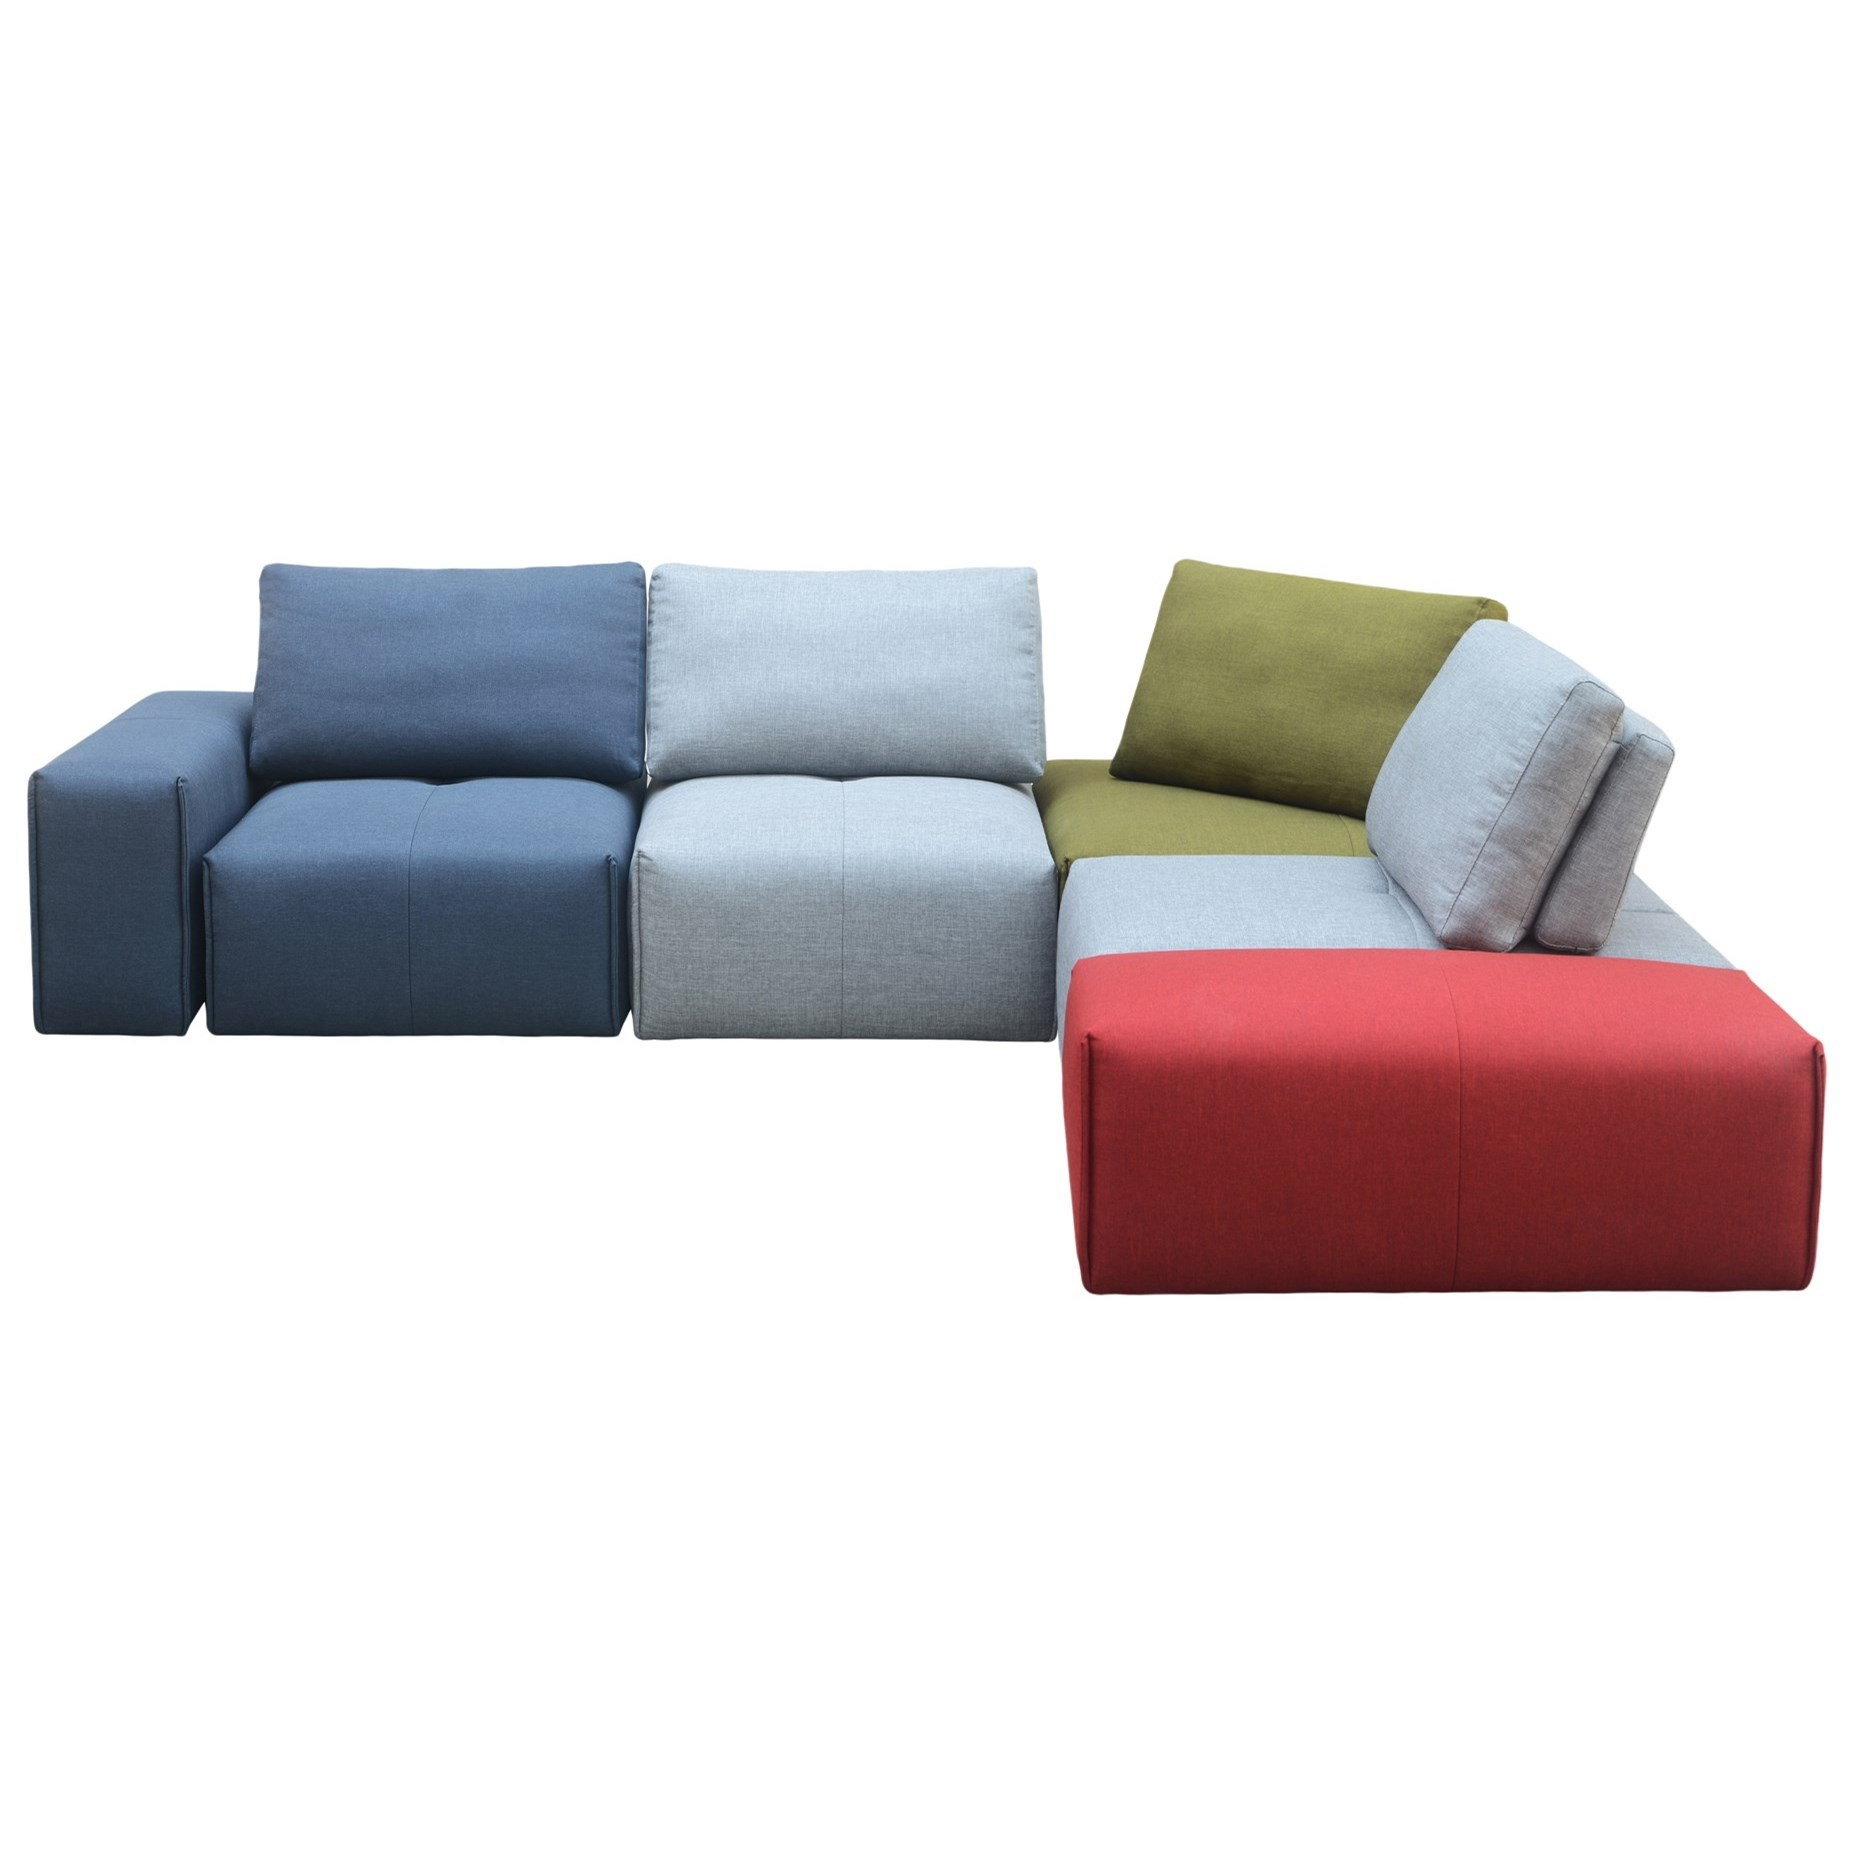 Nathaniel Modular Sectional Multicolor by Moe's Home Collection at Stoney Creek Furniture